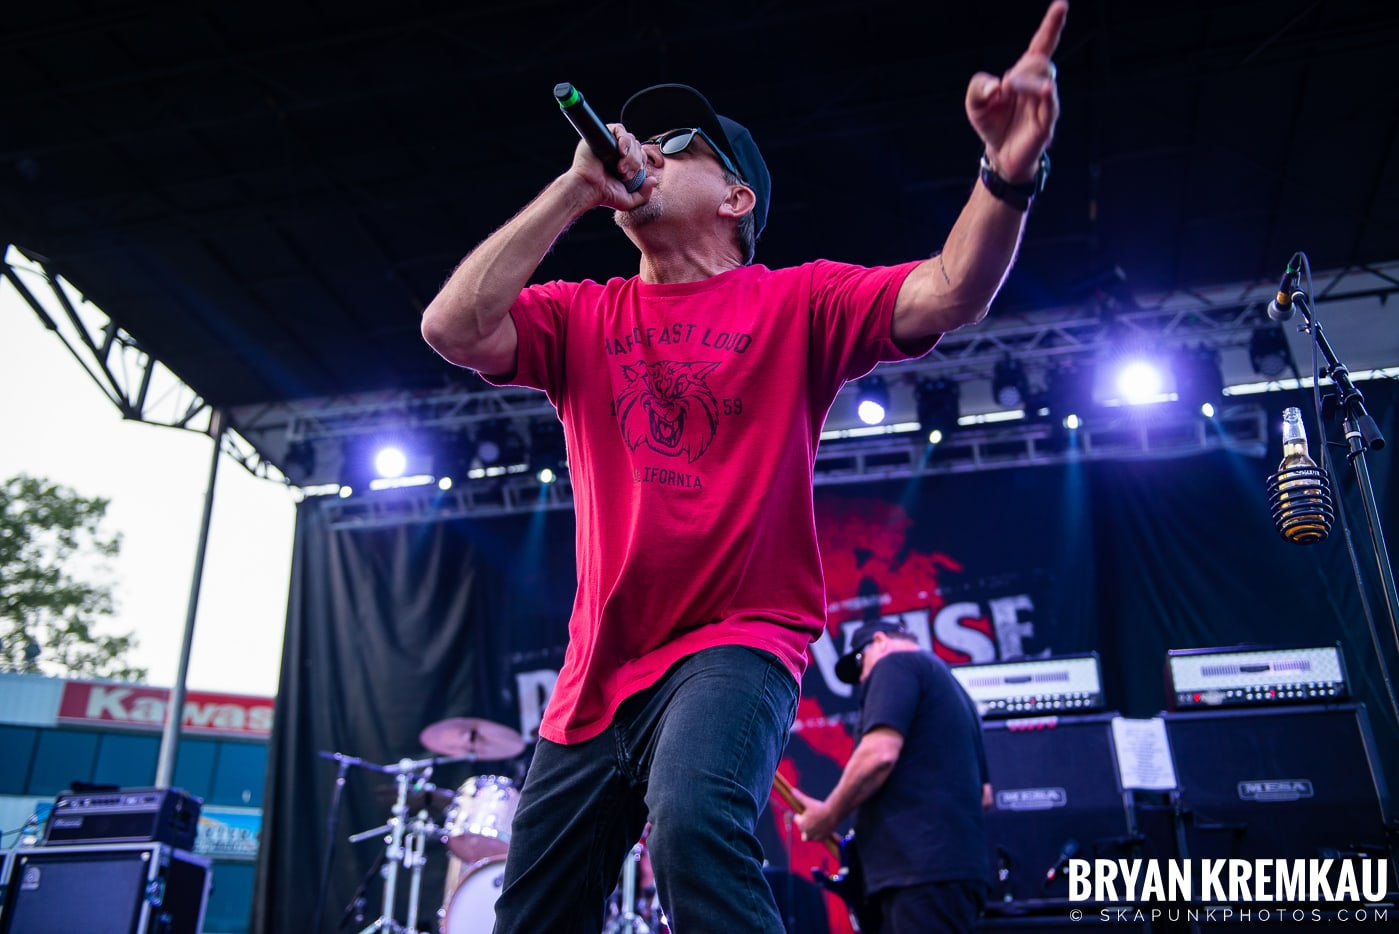 Pennywise @ The Bash Music & Craft Beer Festival, Old Bridge Township Raceway Park, Englishtown, NJ - 6.2.19 (31)